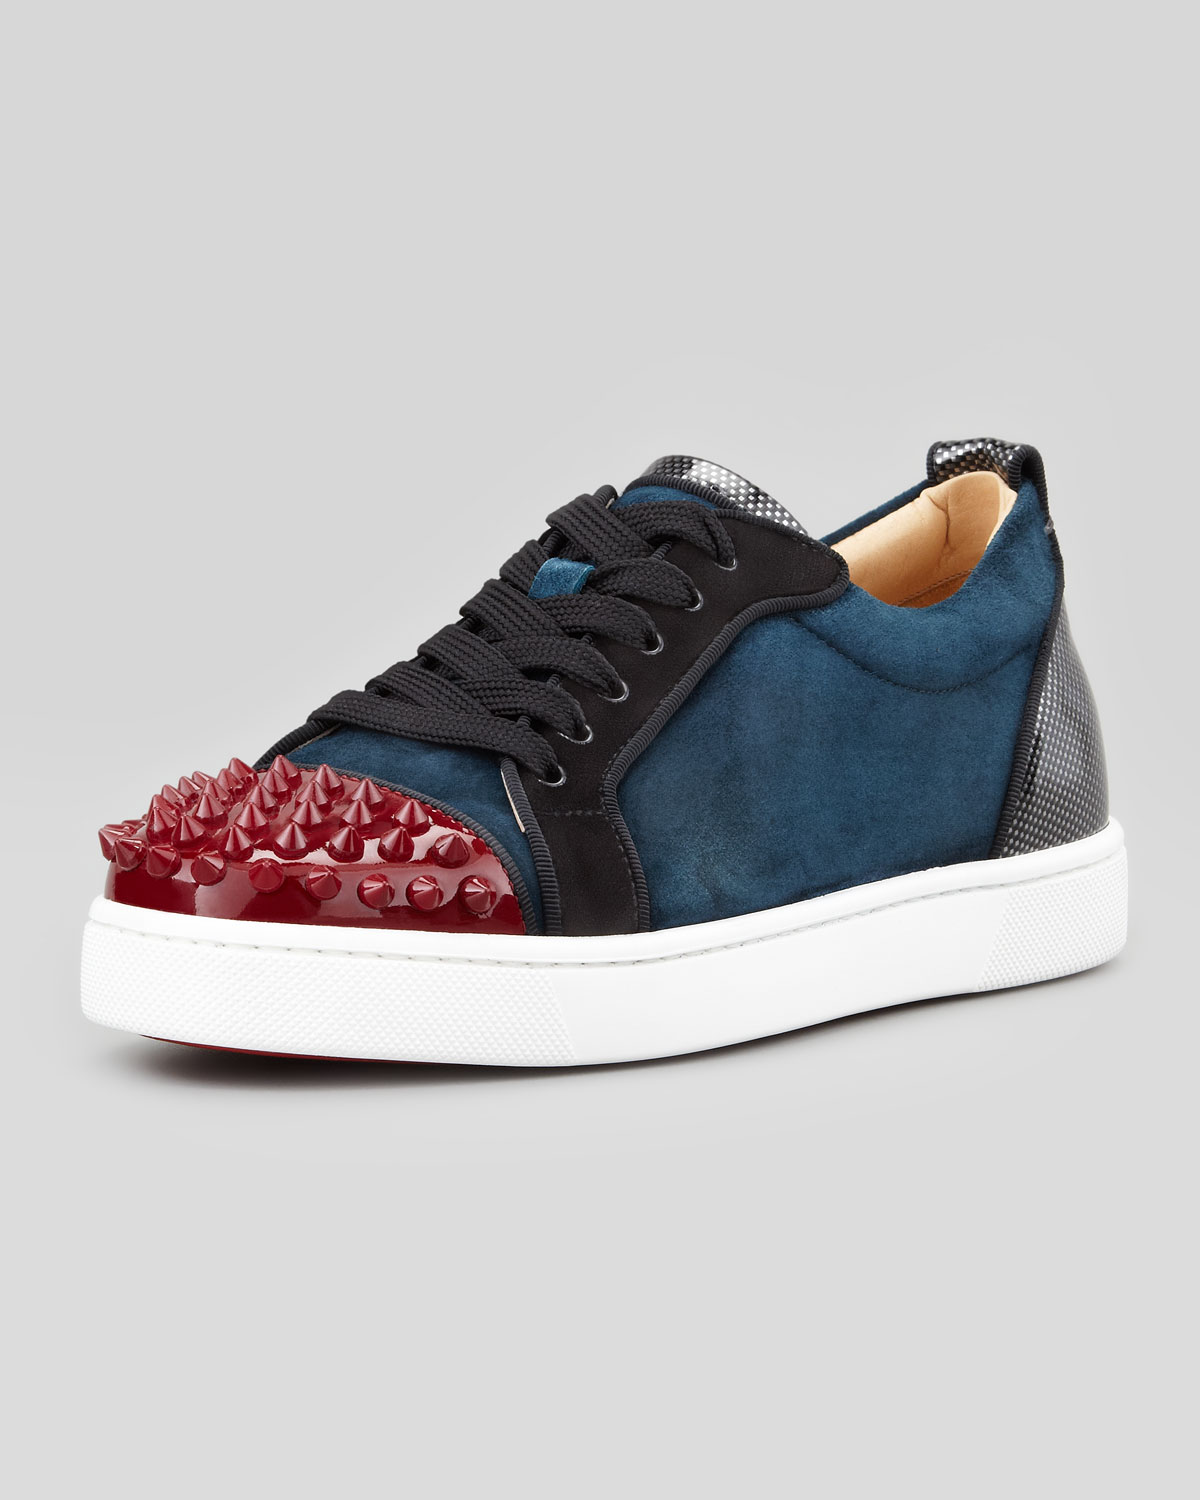 0724f0b2025 Lyst - Christian Louboutin Louis Junior Spikes Low-top Sneaker in ...